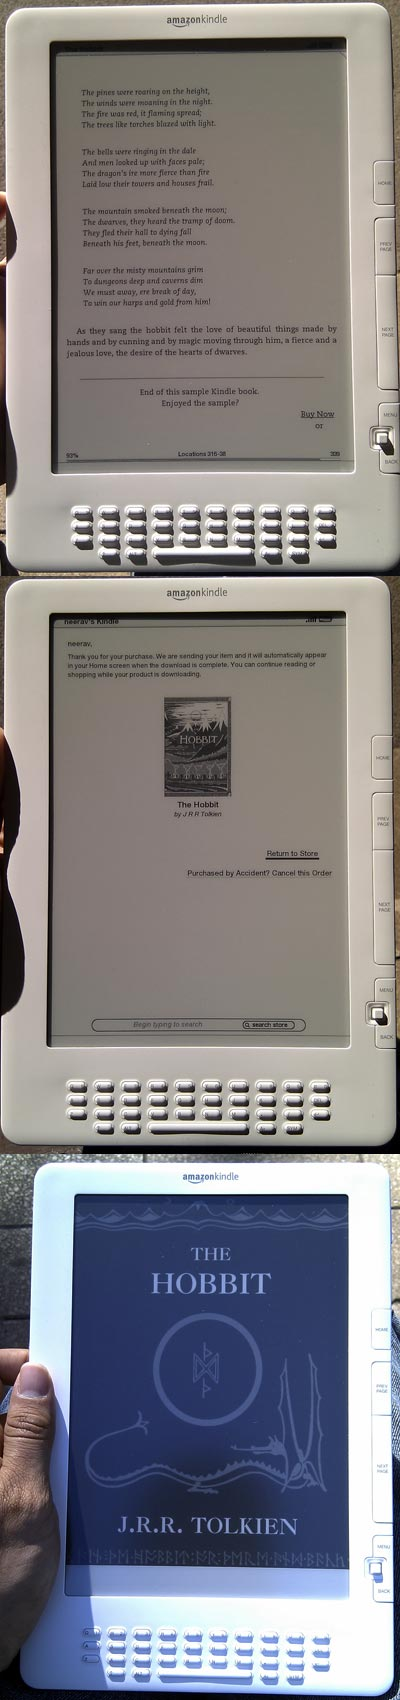 buying amazon kindle book